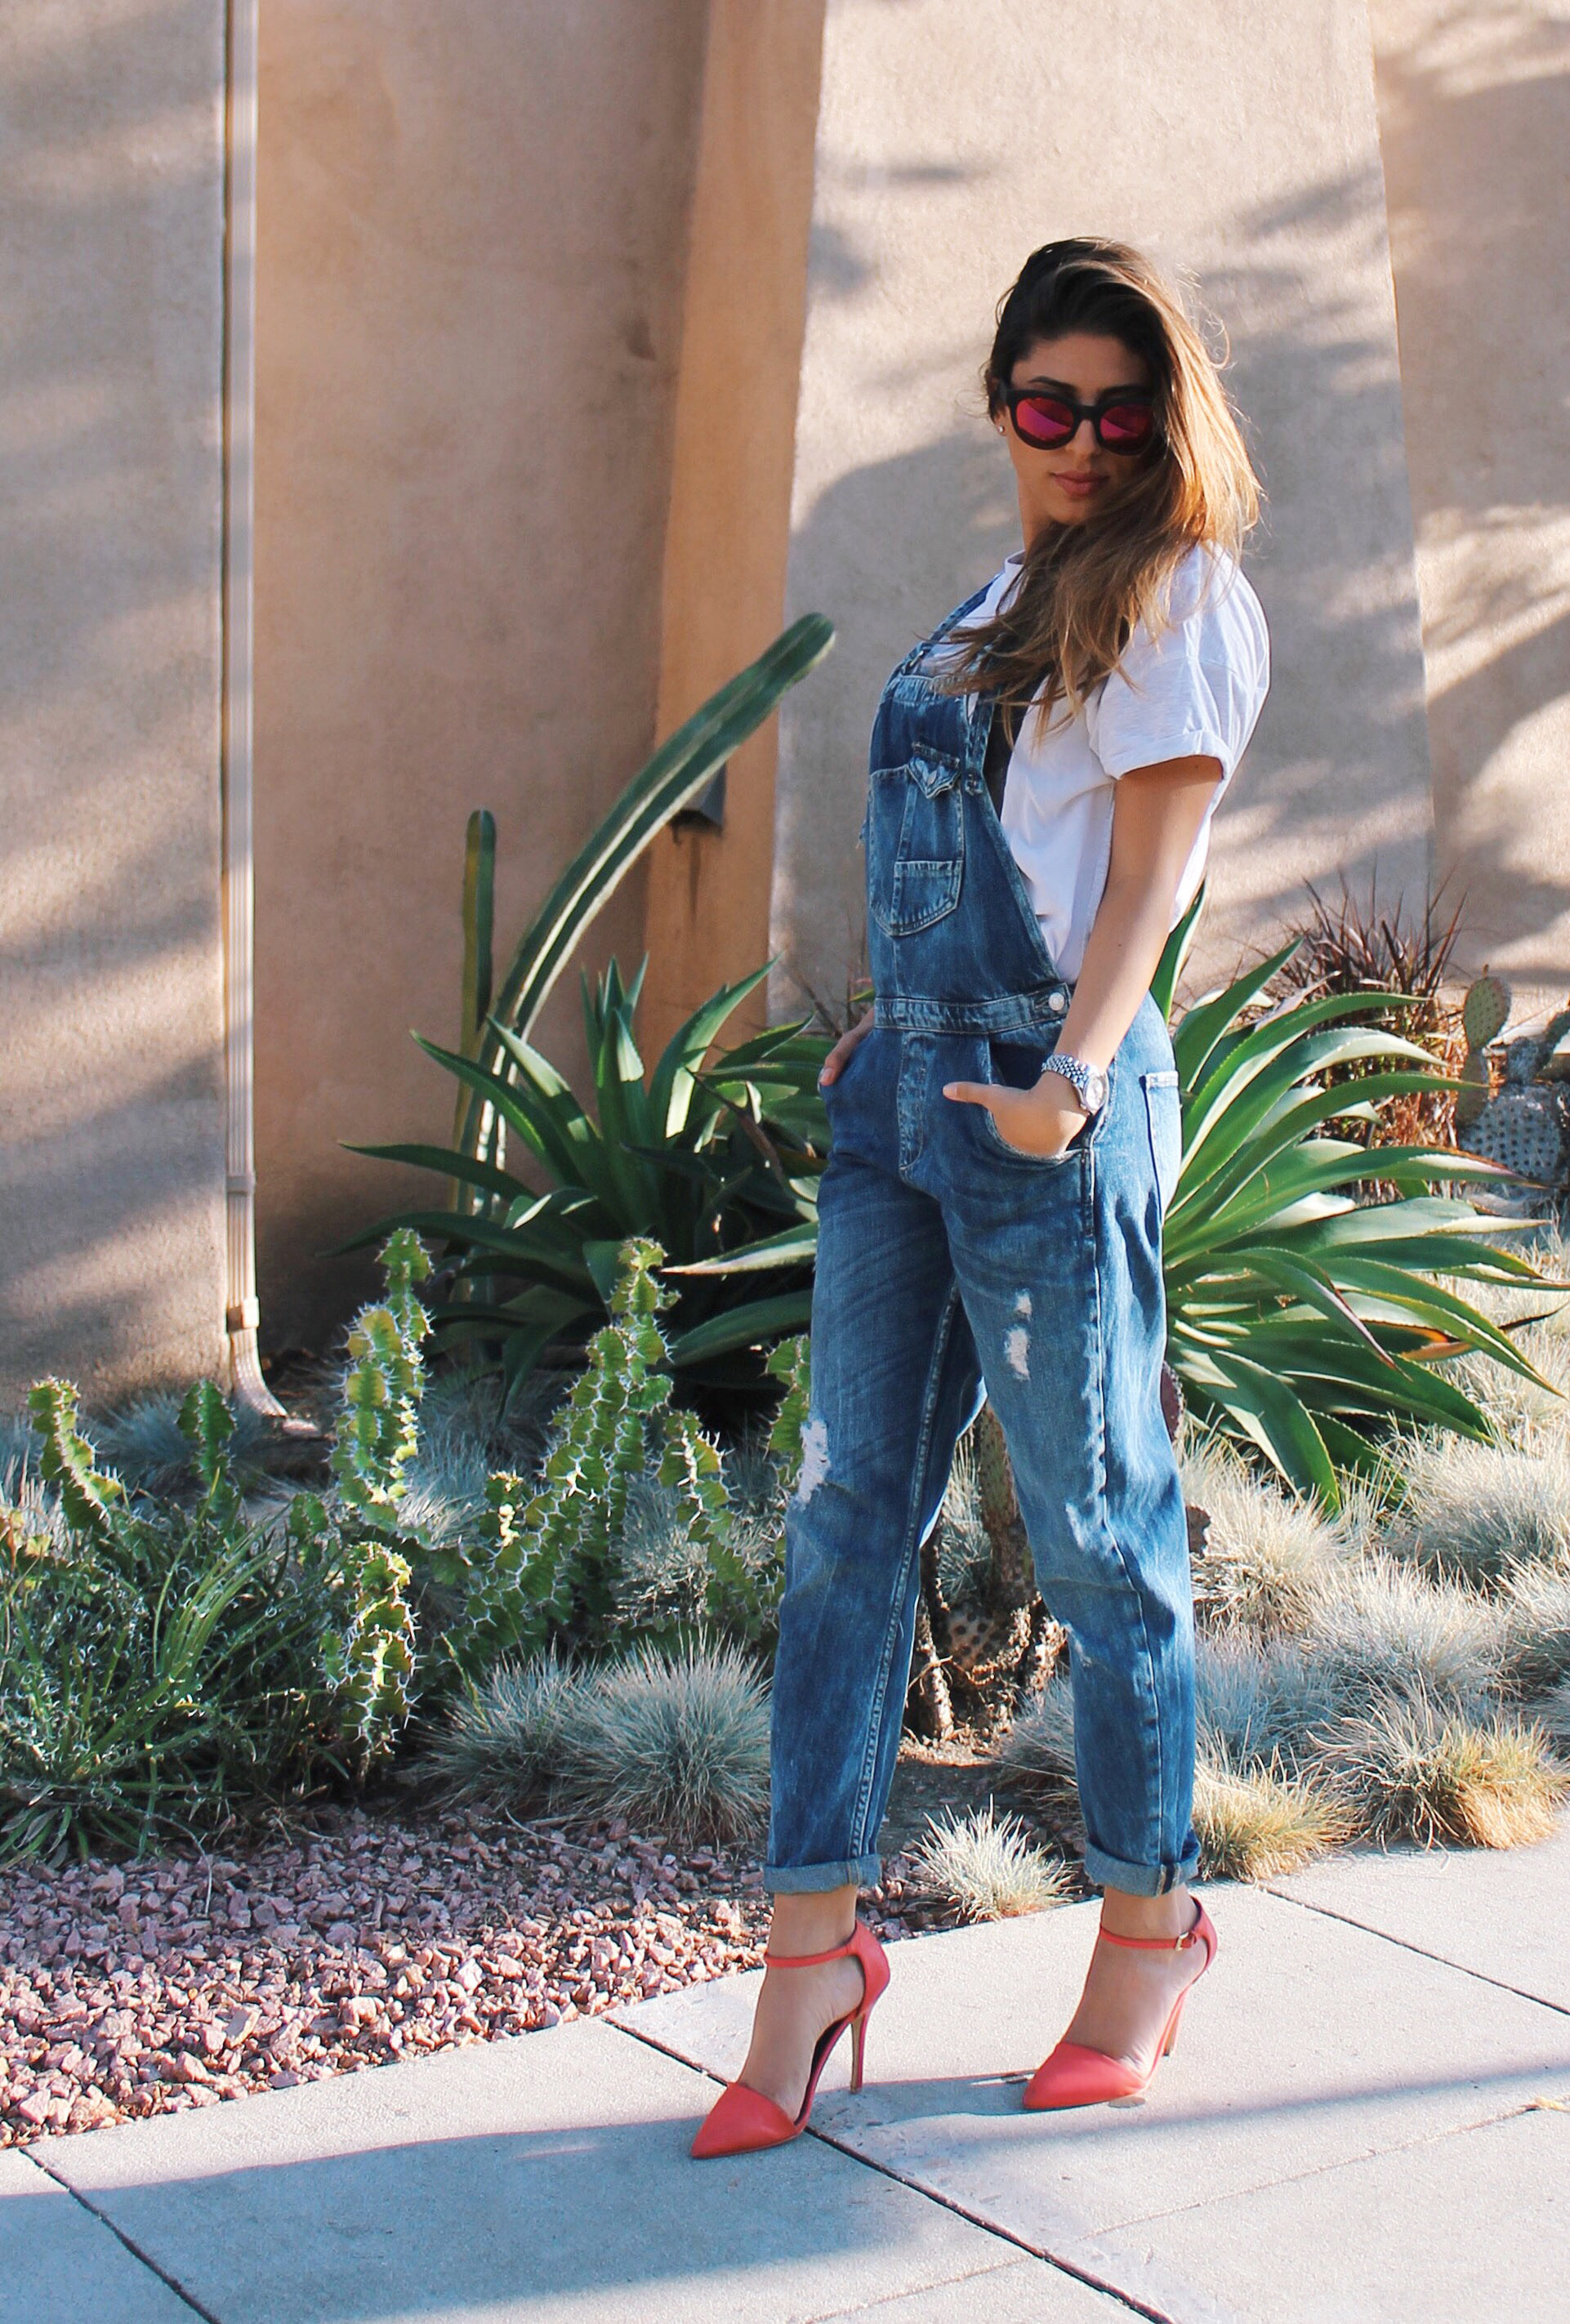 Mel Ronnie Overalls Heels Outfit